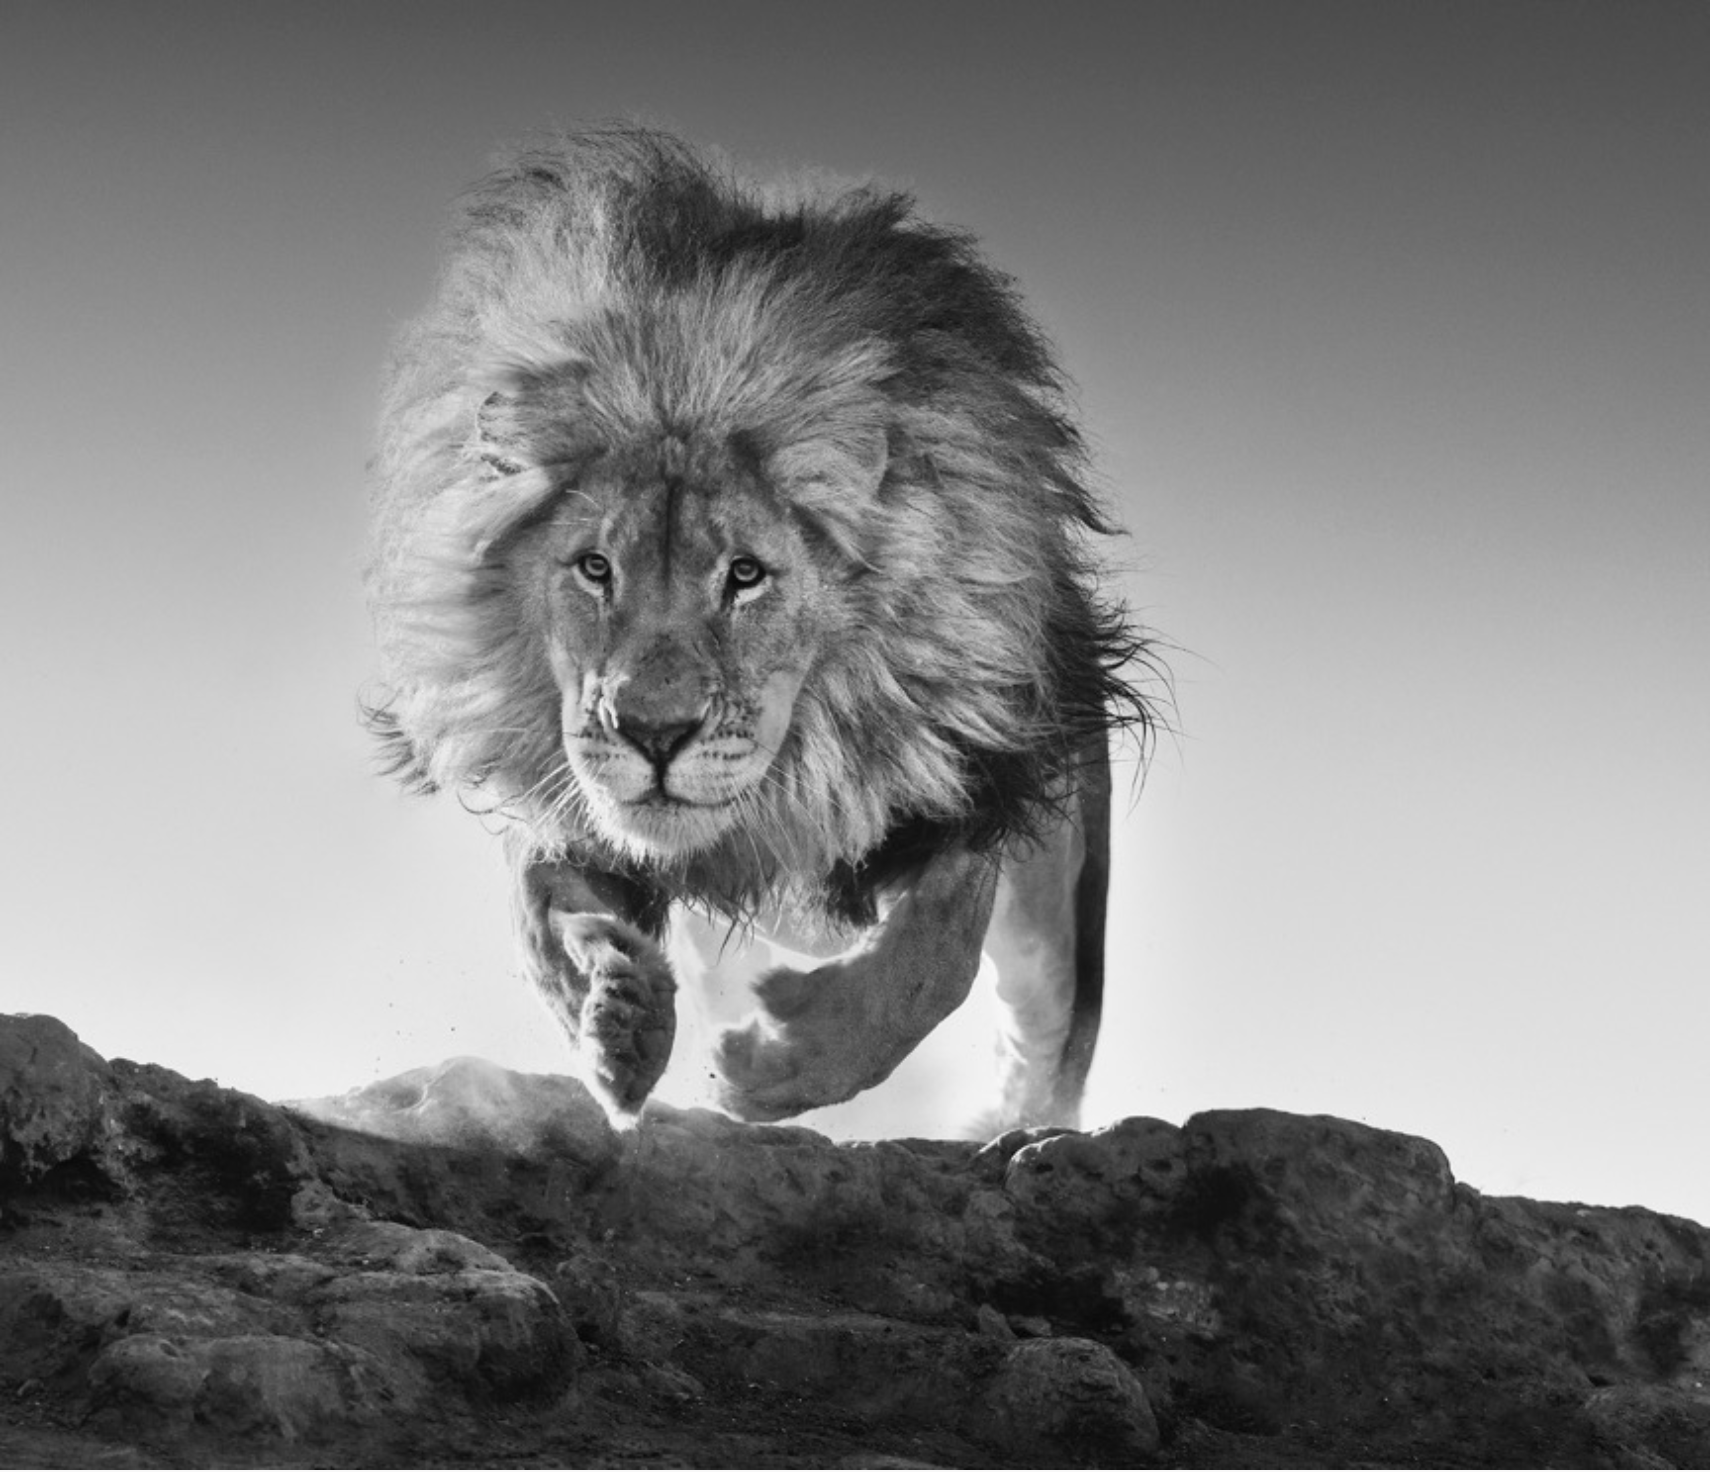 Hairspray - David Yarrow - Leonhard's Gallery